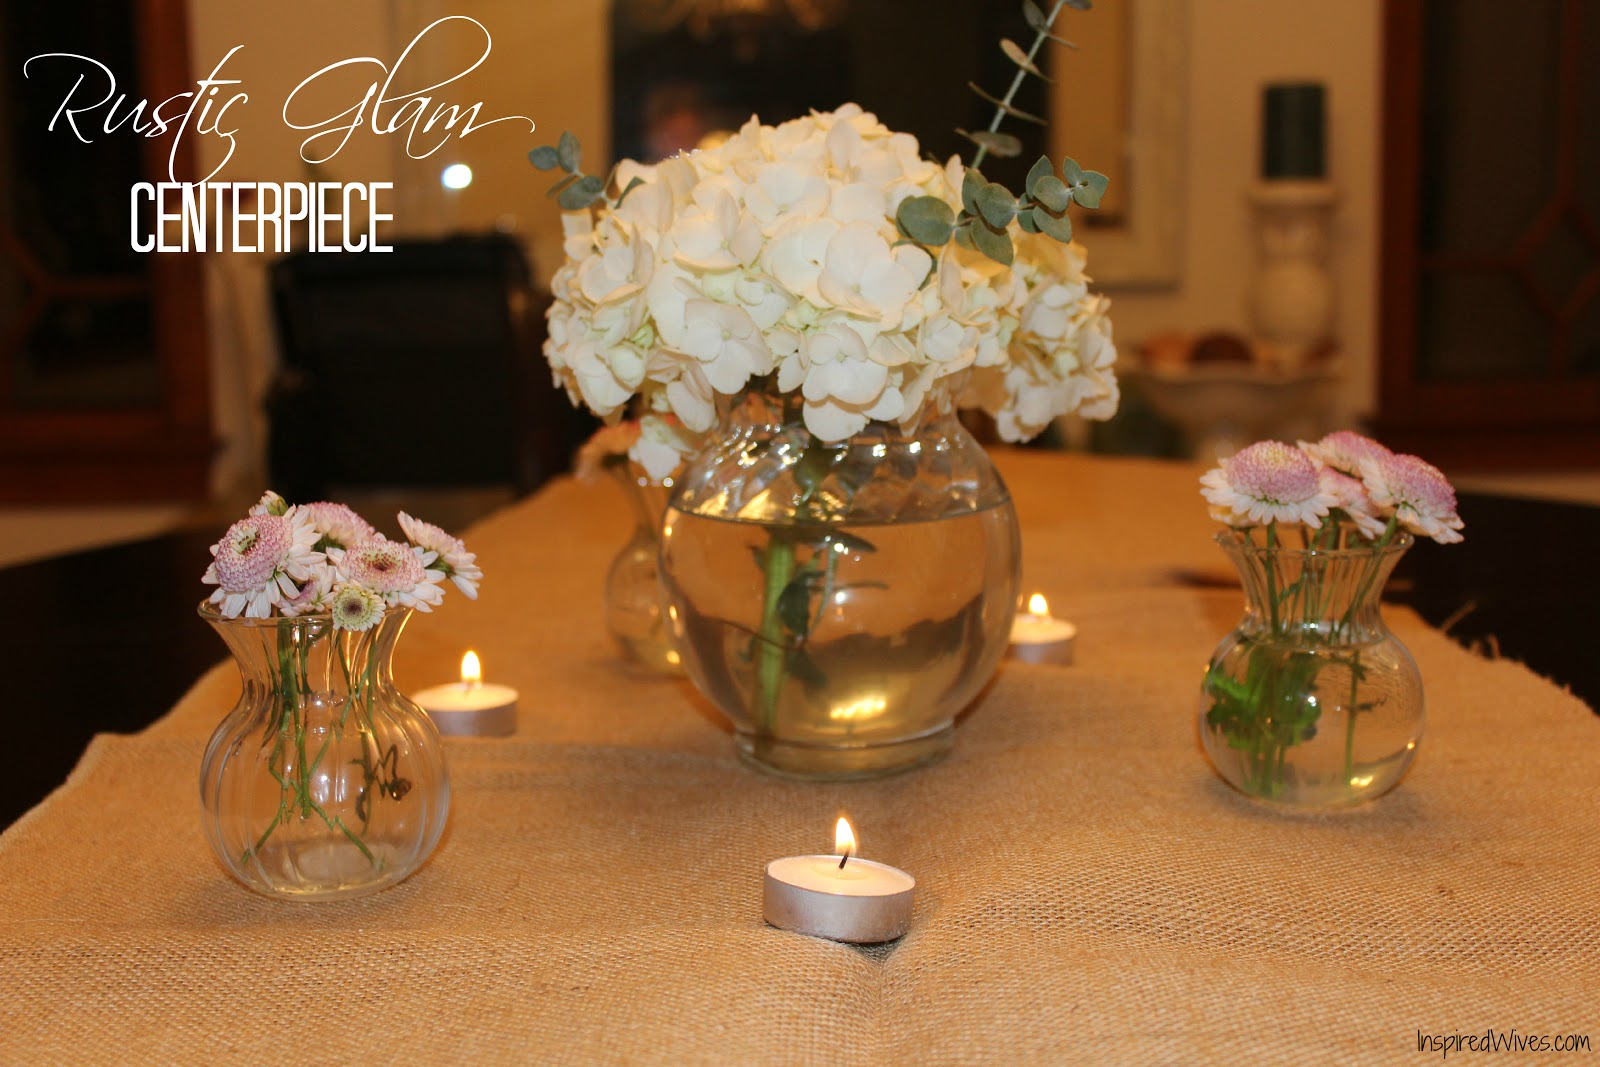 Dinner party centerpiece ideas